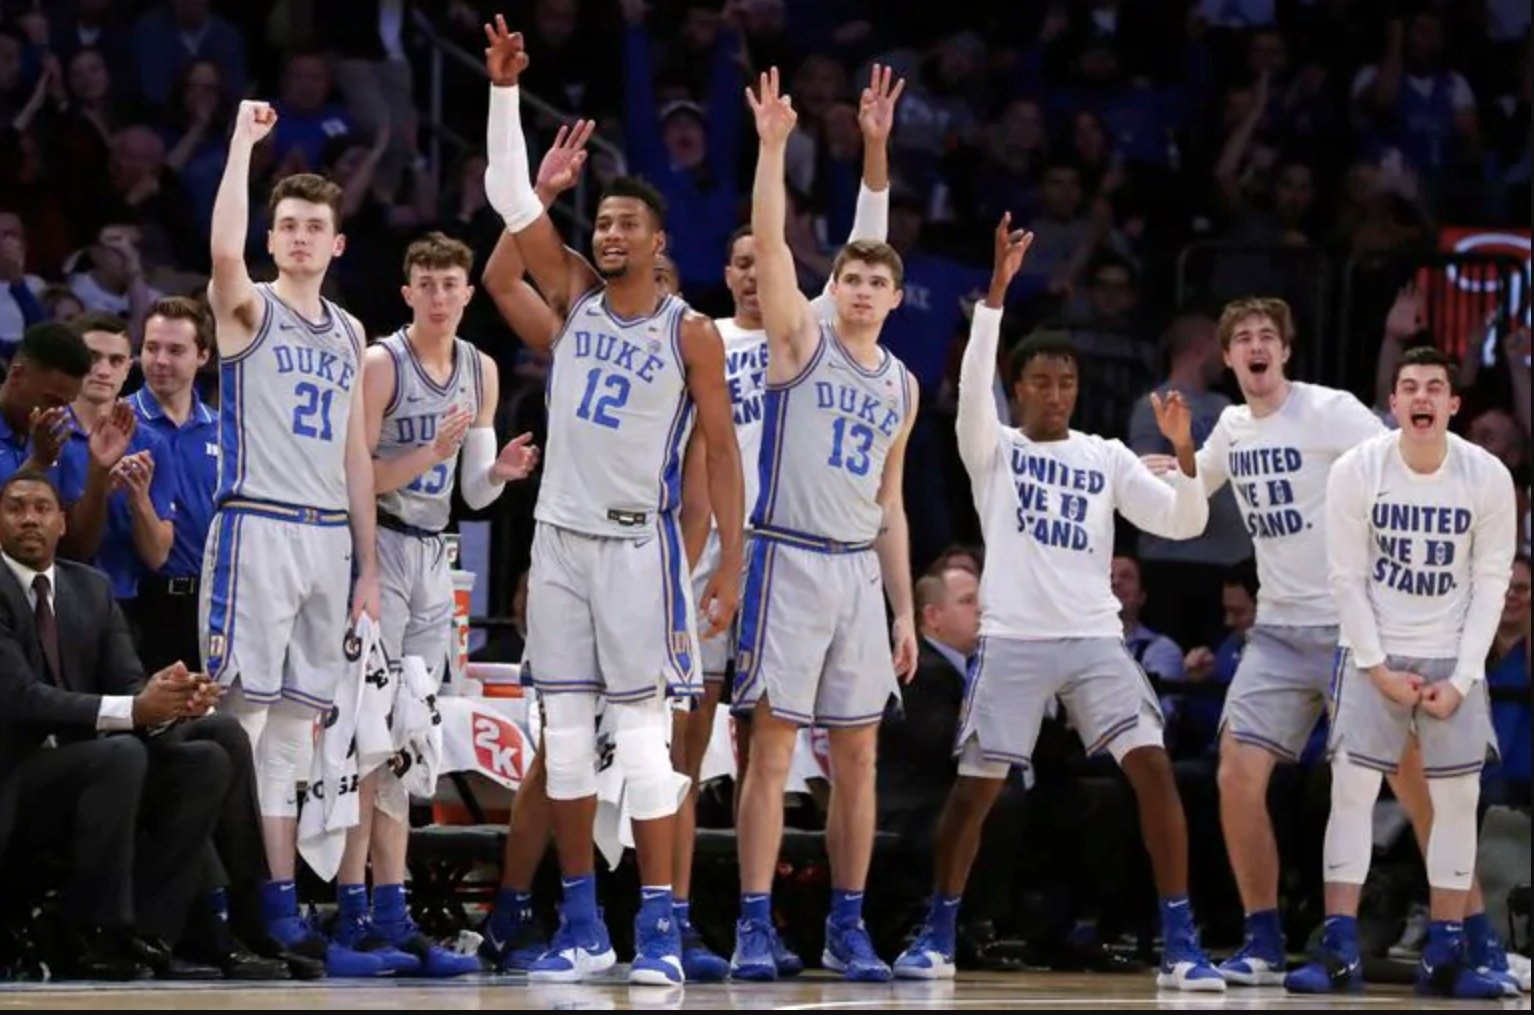 Duke Blue Devils Name 2019-20 Men's Basketball Team Awards